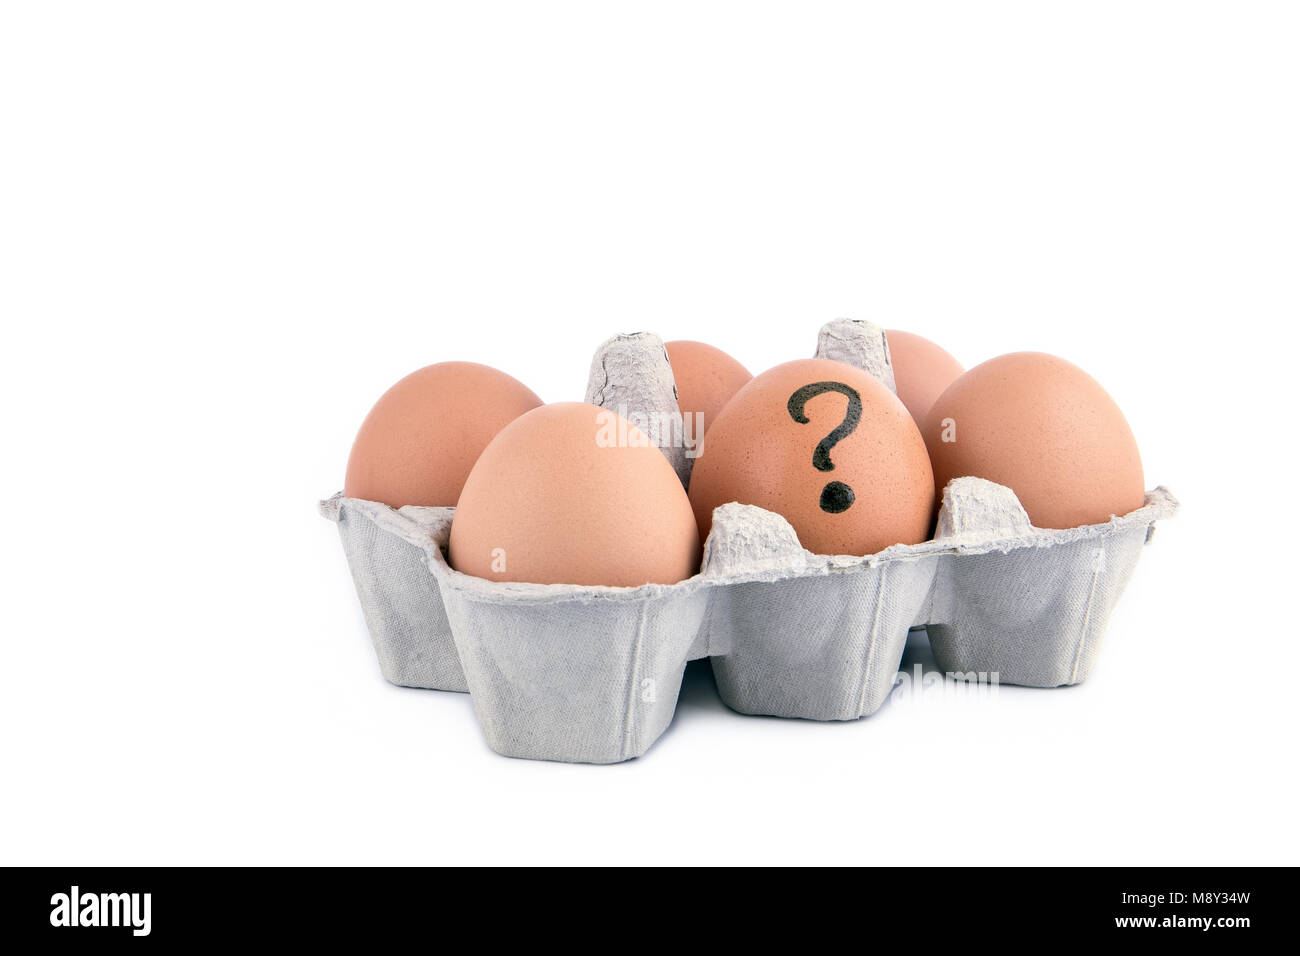 Close-up view of raw chicken eggs with question mark in box on white background - Stock Image